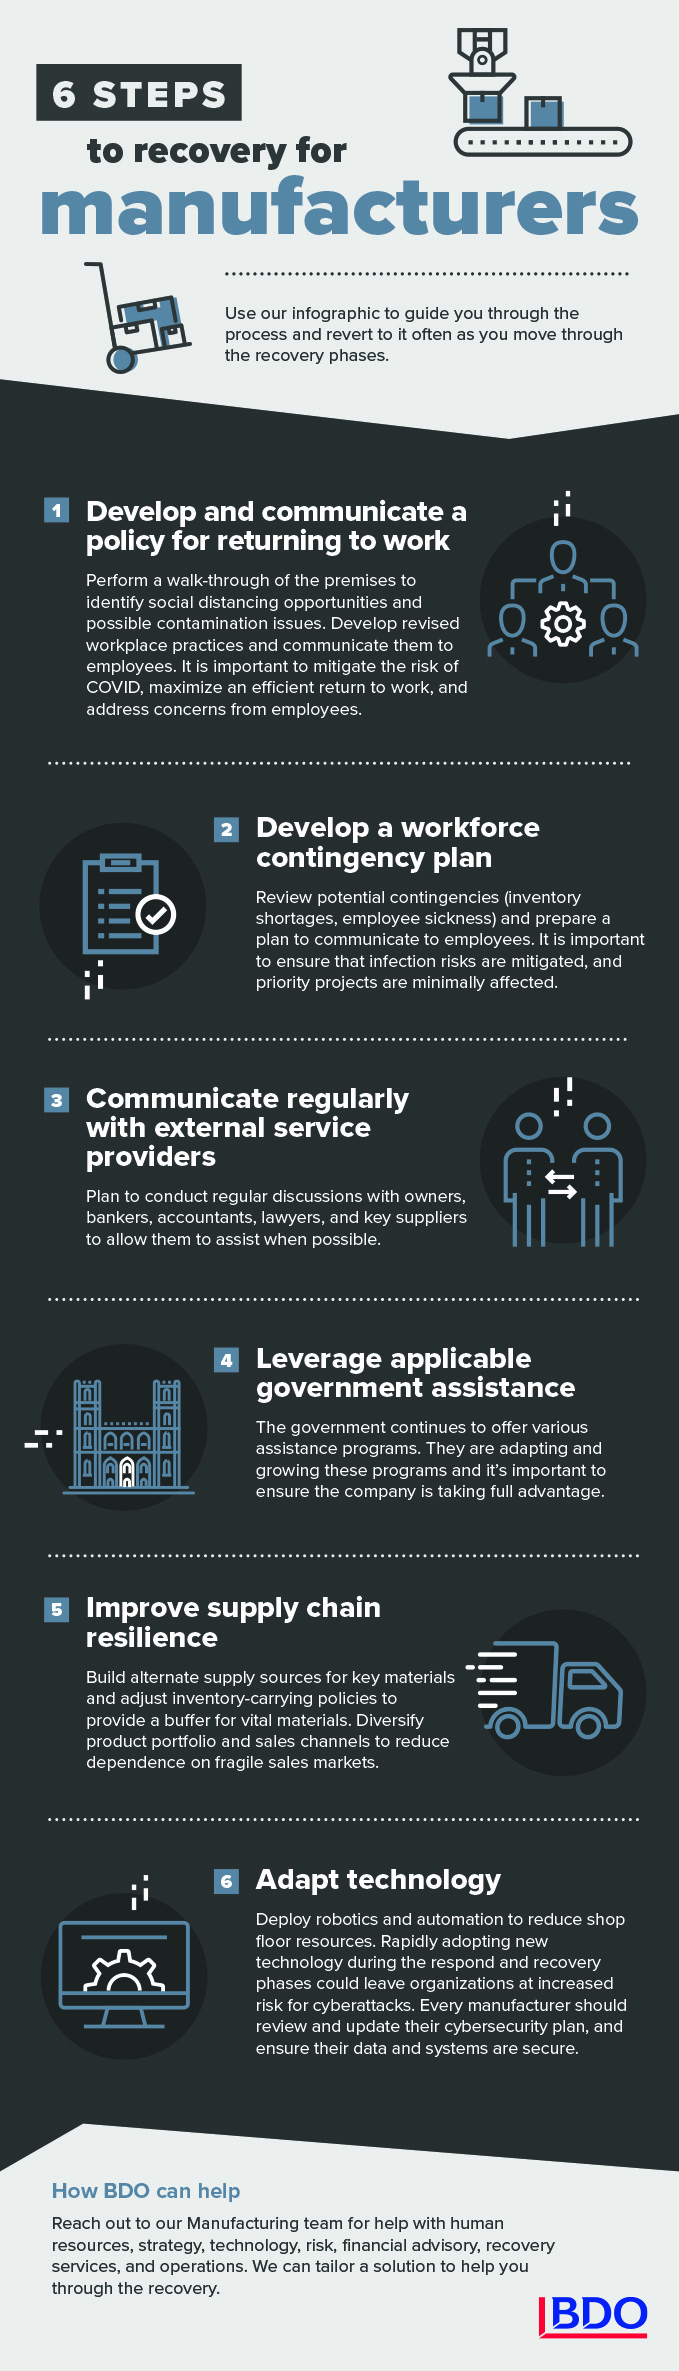 Manufacturing_28May20_5-ways-to-recover-from-COVID_Infographic.jpg